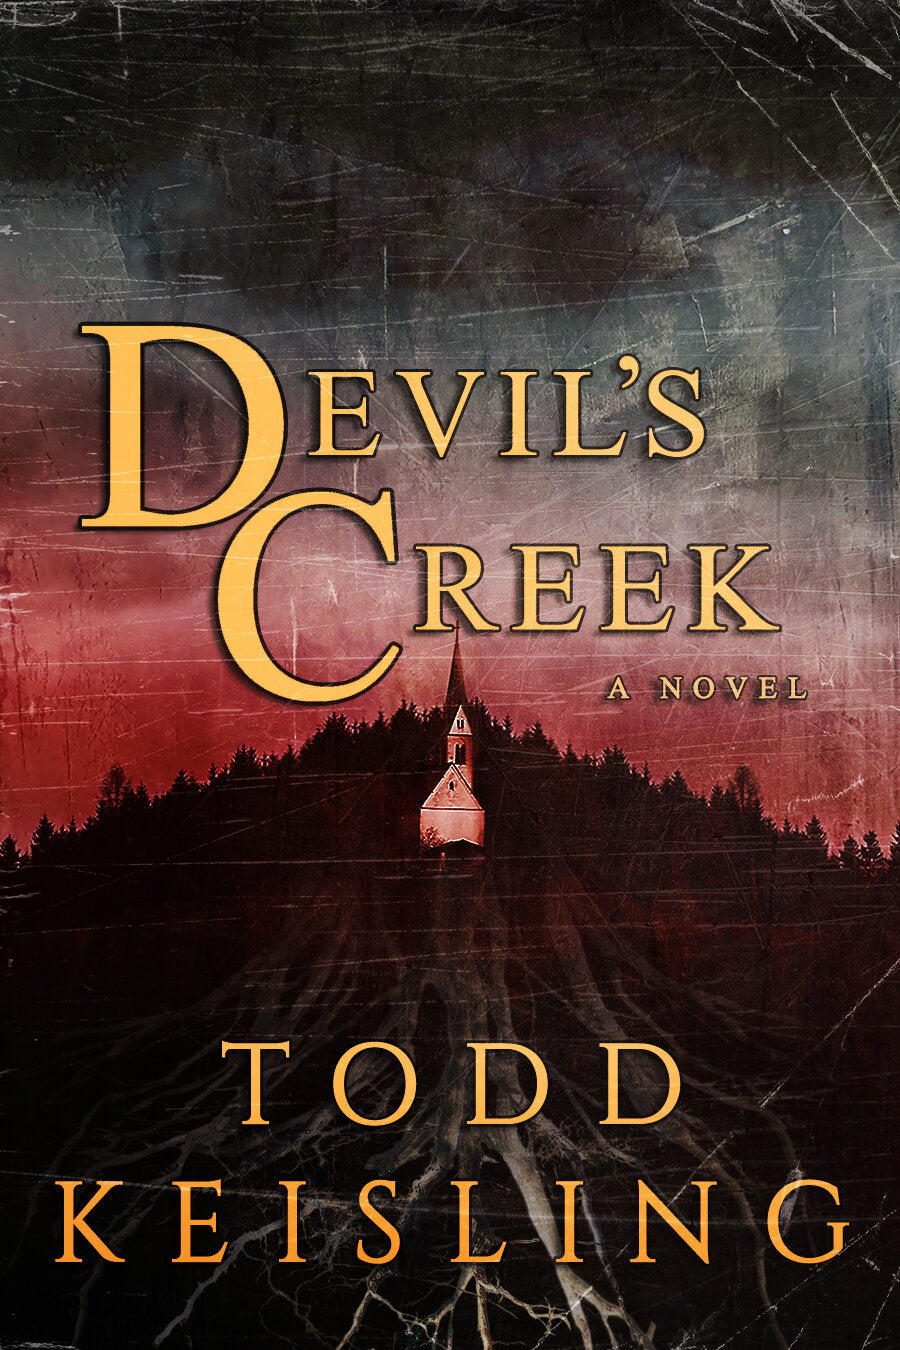 Side by Side Review: DEVIL'S CREEK by Todd Keisling